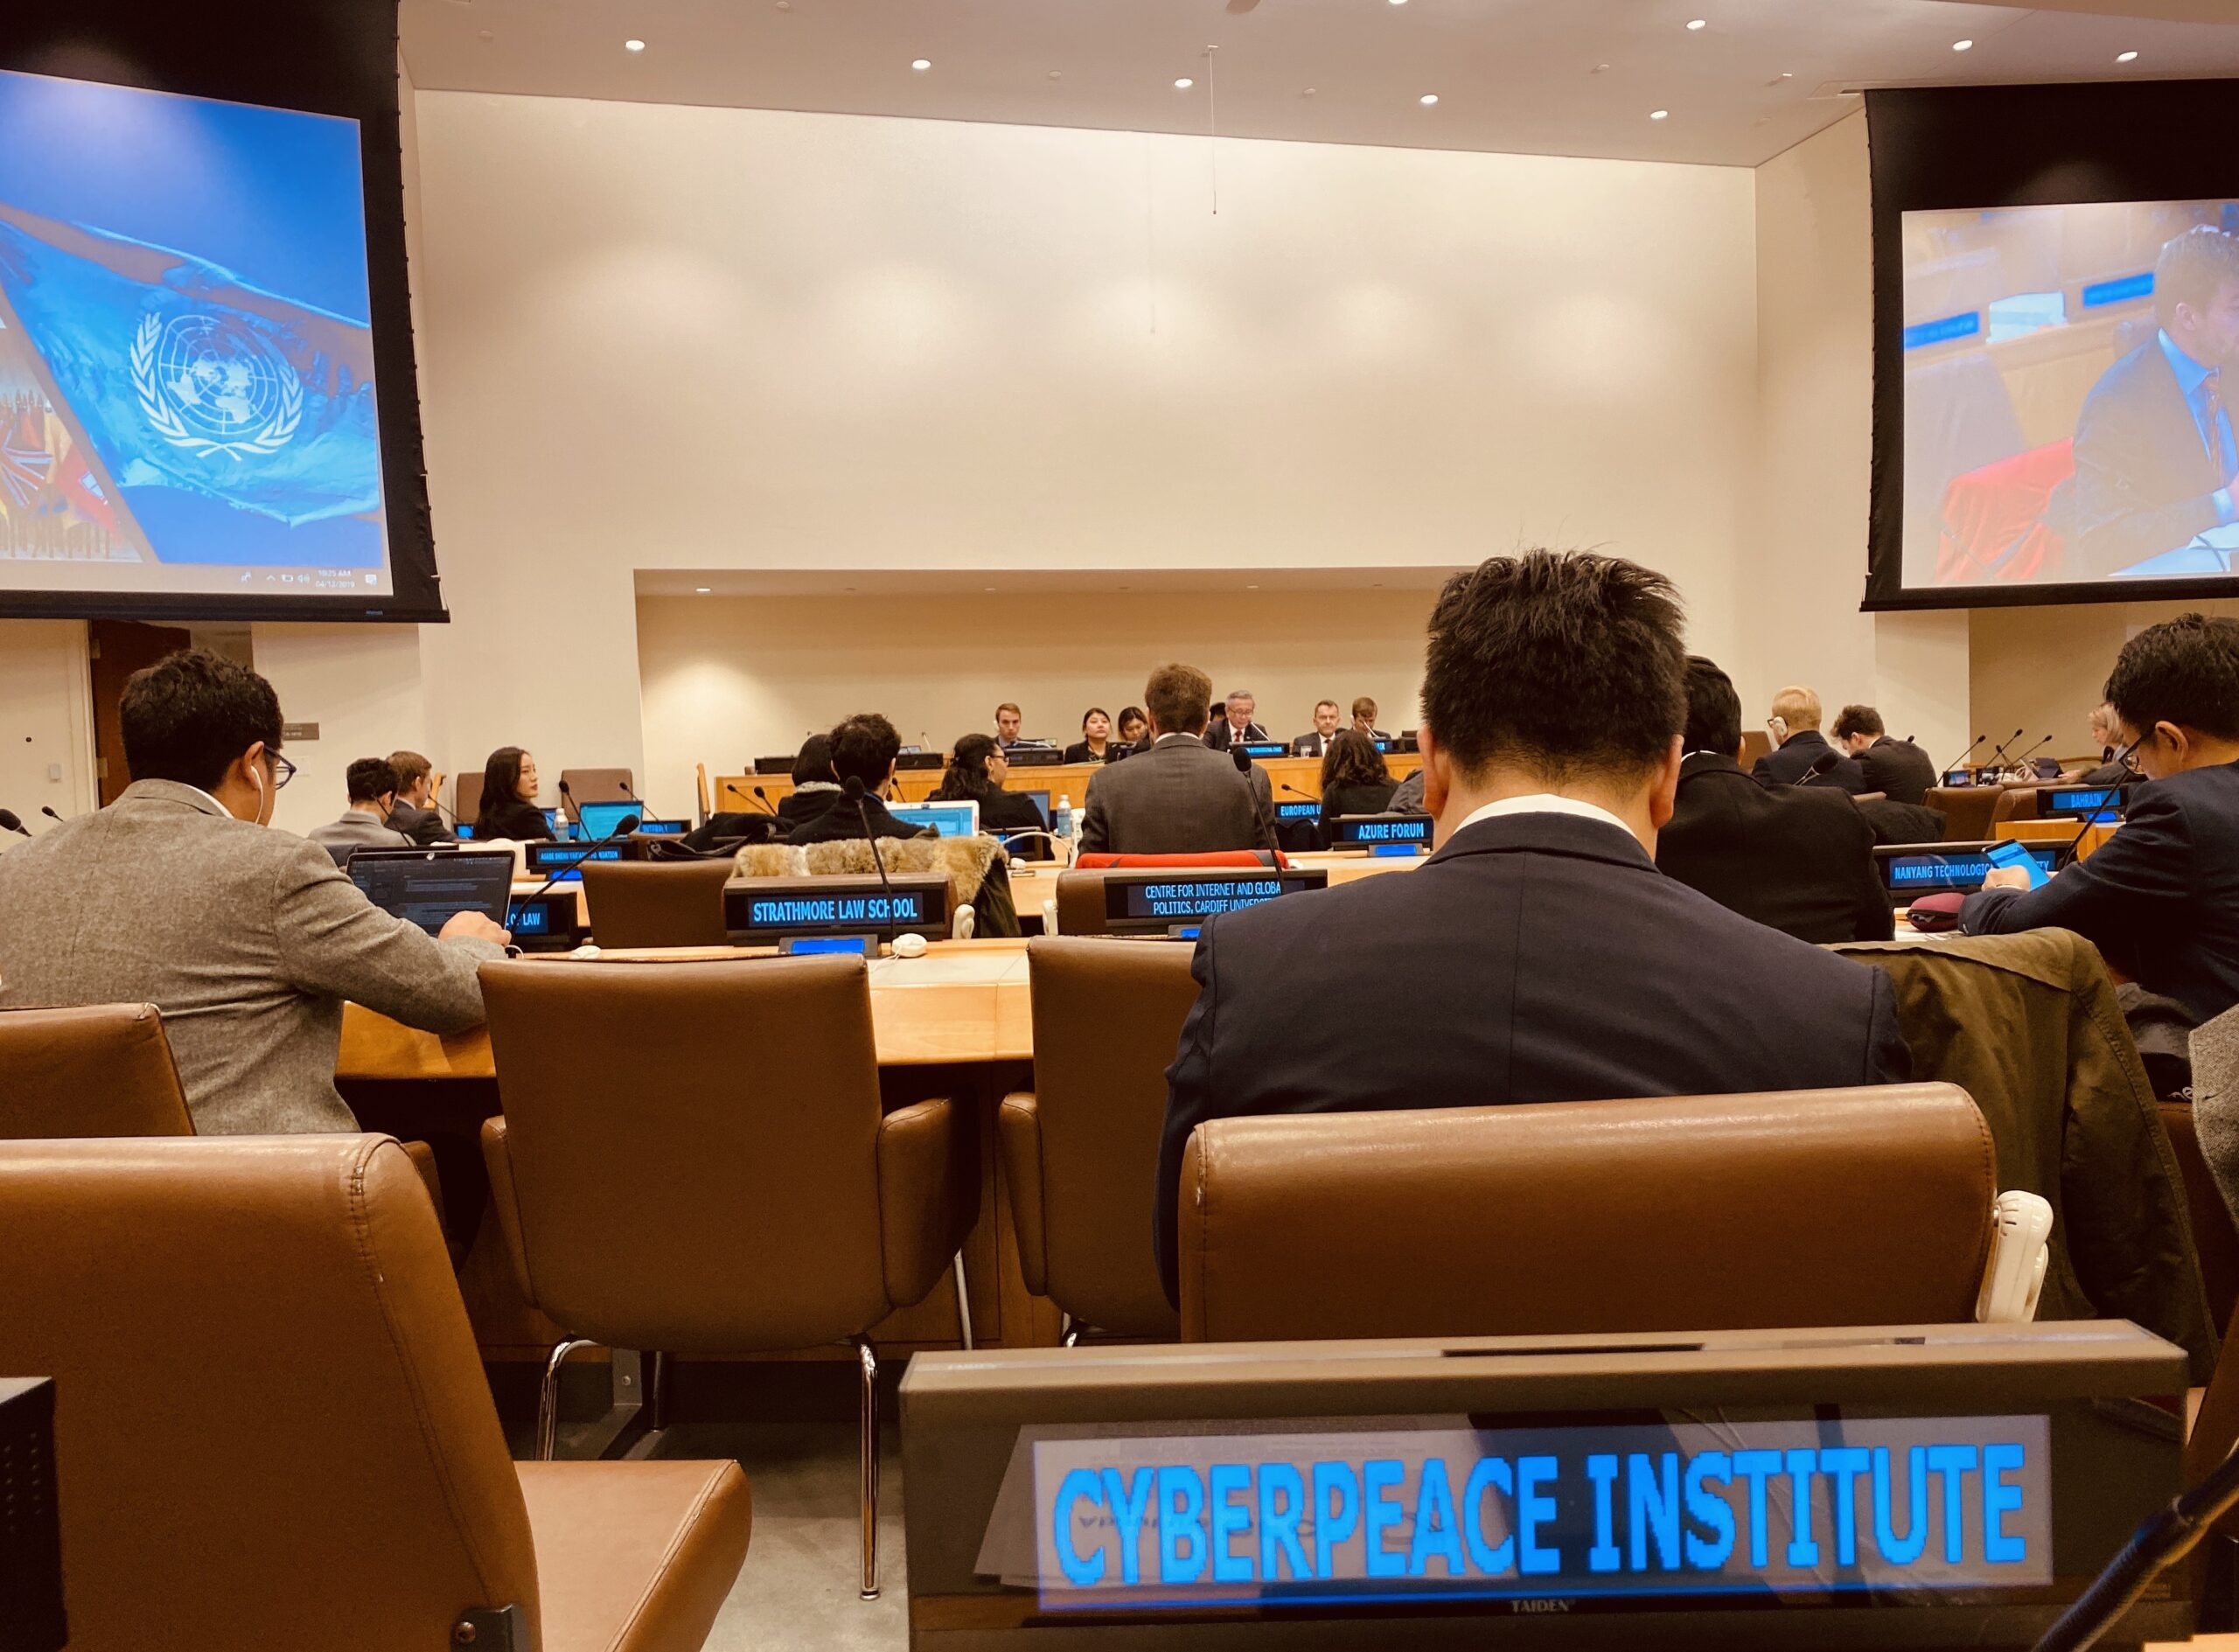 The CyberPeace Institute at the UN OEWG's Multi-Stakeholder Meeting